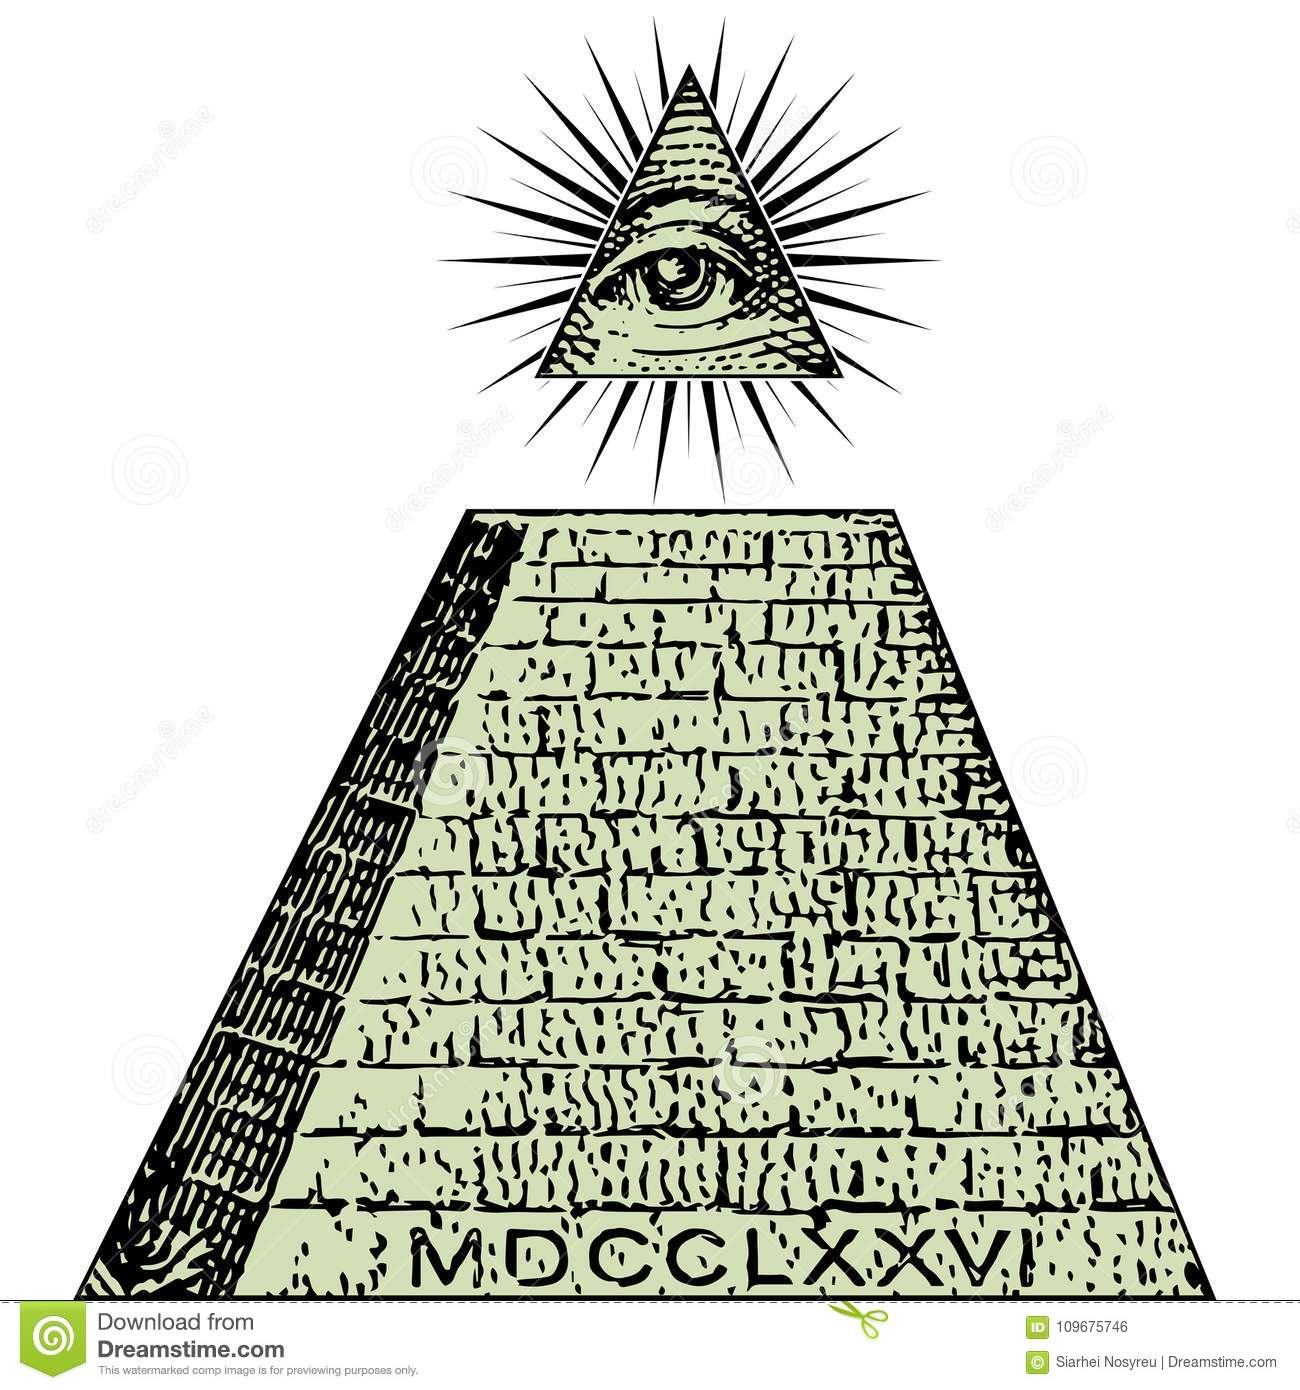 New World Order  One Dollar, Pyramid  Illuminati Symbols Bill